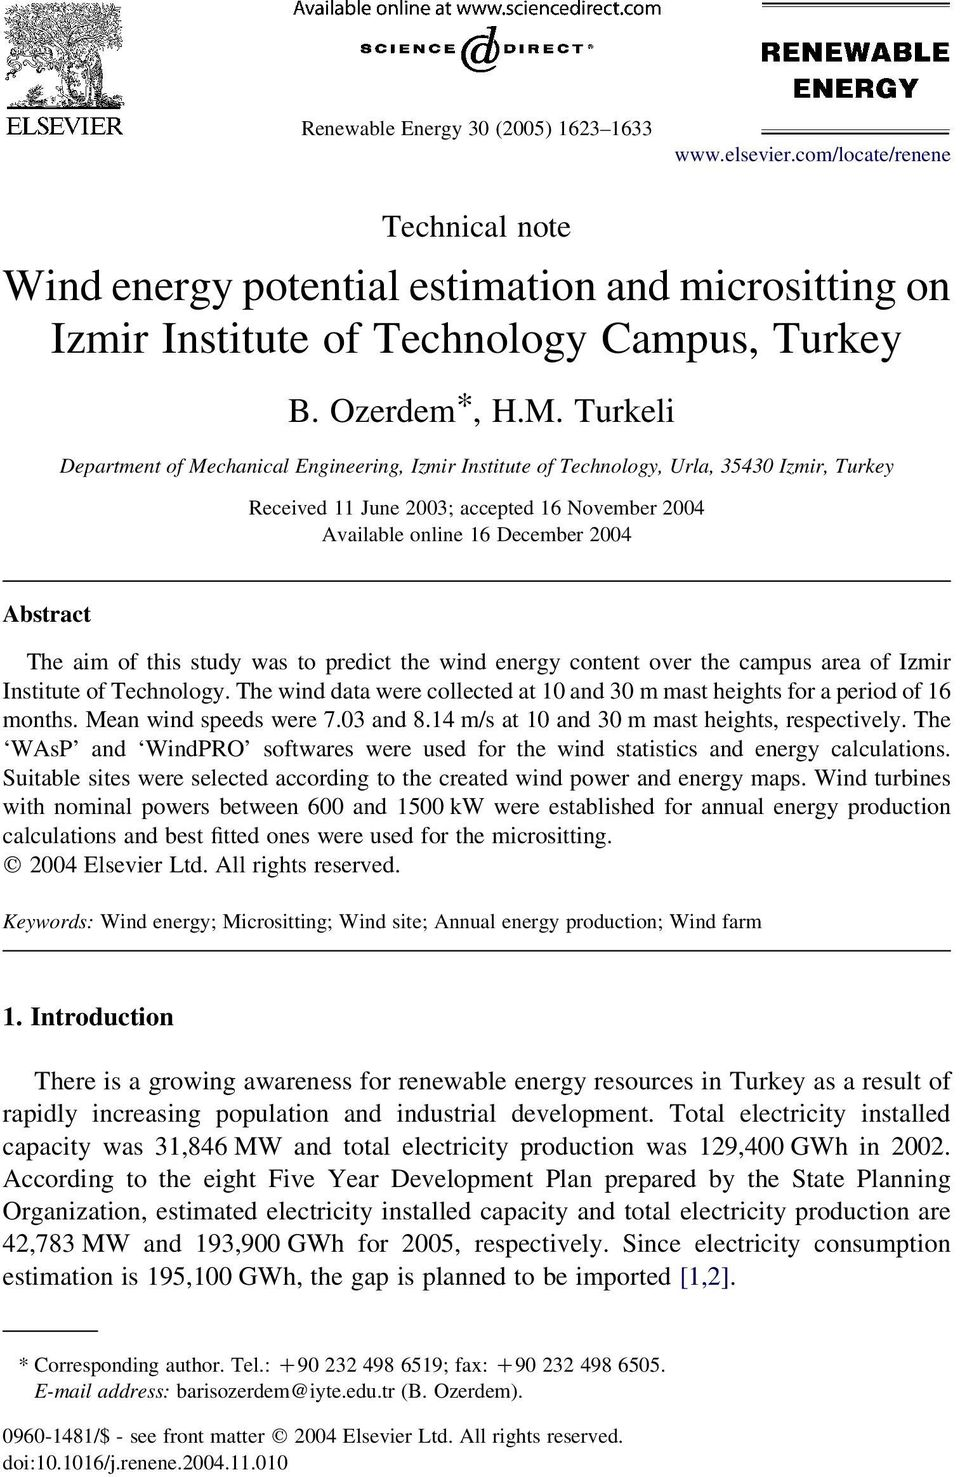 aim of this study was to predict the wind energy content over the campus area of Izmir Institute of Technology. The wind data were collected at 10 and 30 m mast heights for a period of 16 months.